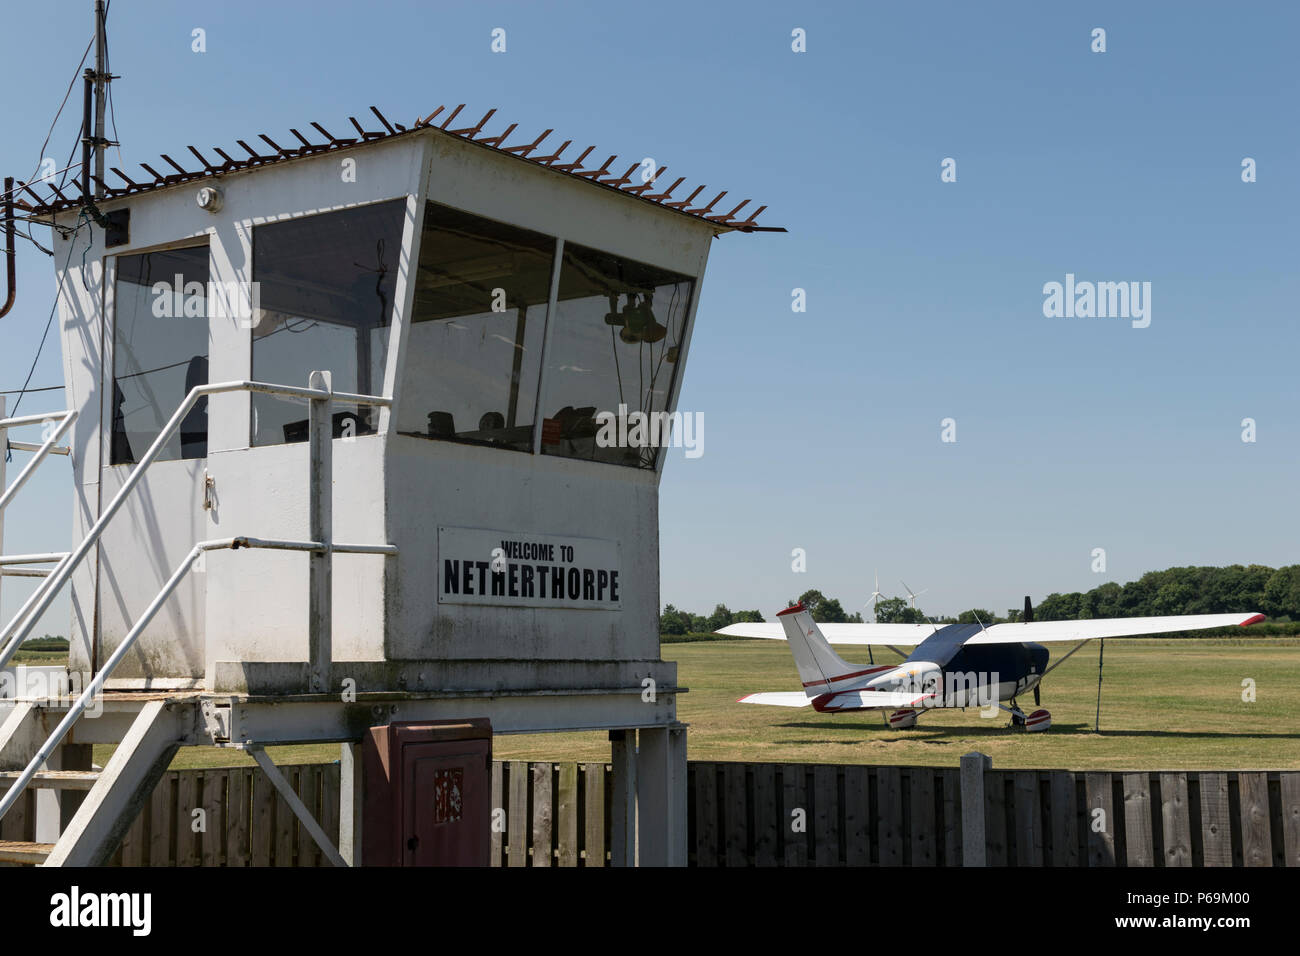 Control tower at Netherthorpe Airfield, the home of Sheffield Aero Club, near Shireoaks, Worksop - Stock Image